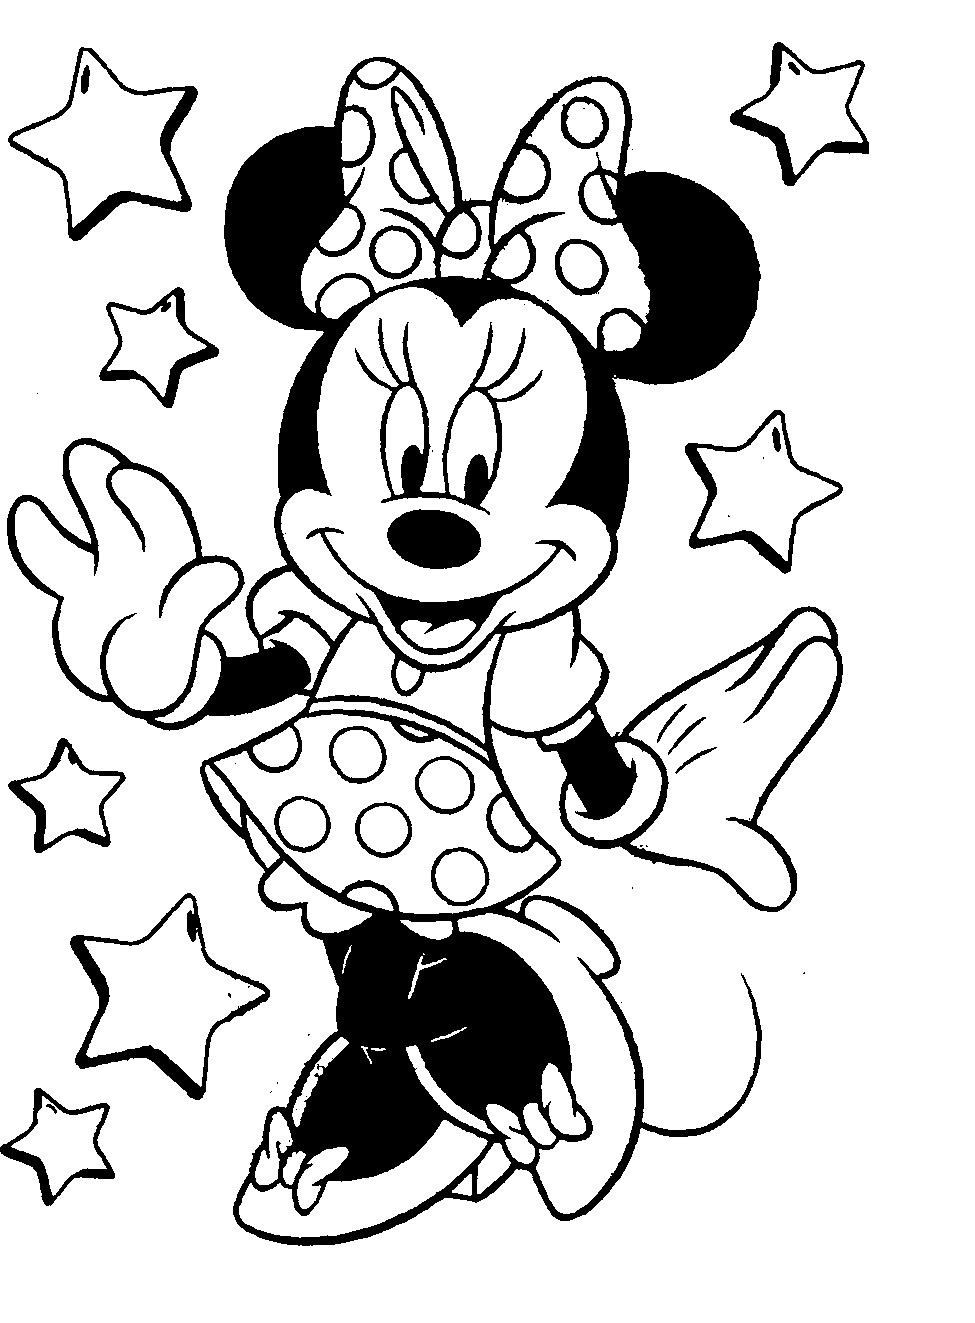 coloring pages for kids mickey mouse kids n funcom 49 coloring pages of mickey mouse for kids pages coloring mouse mickey